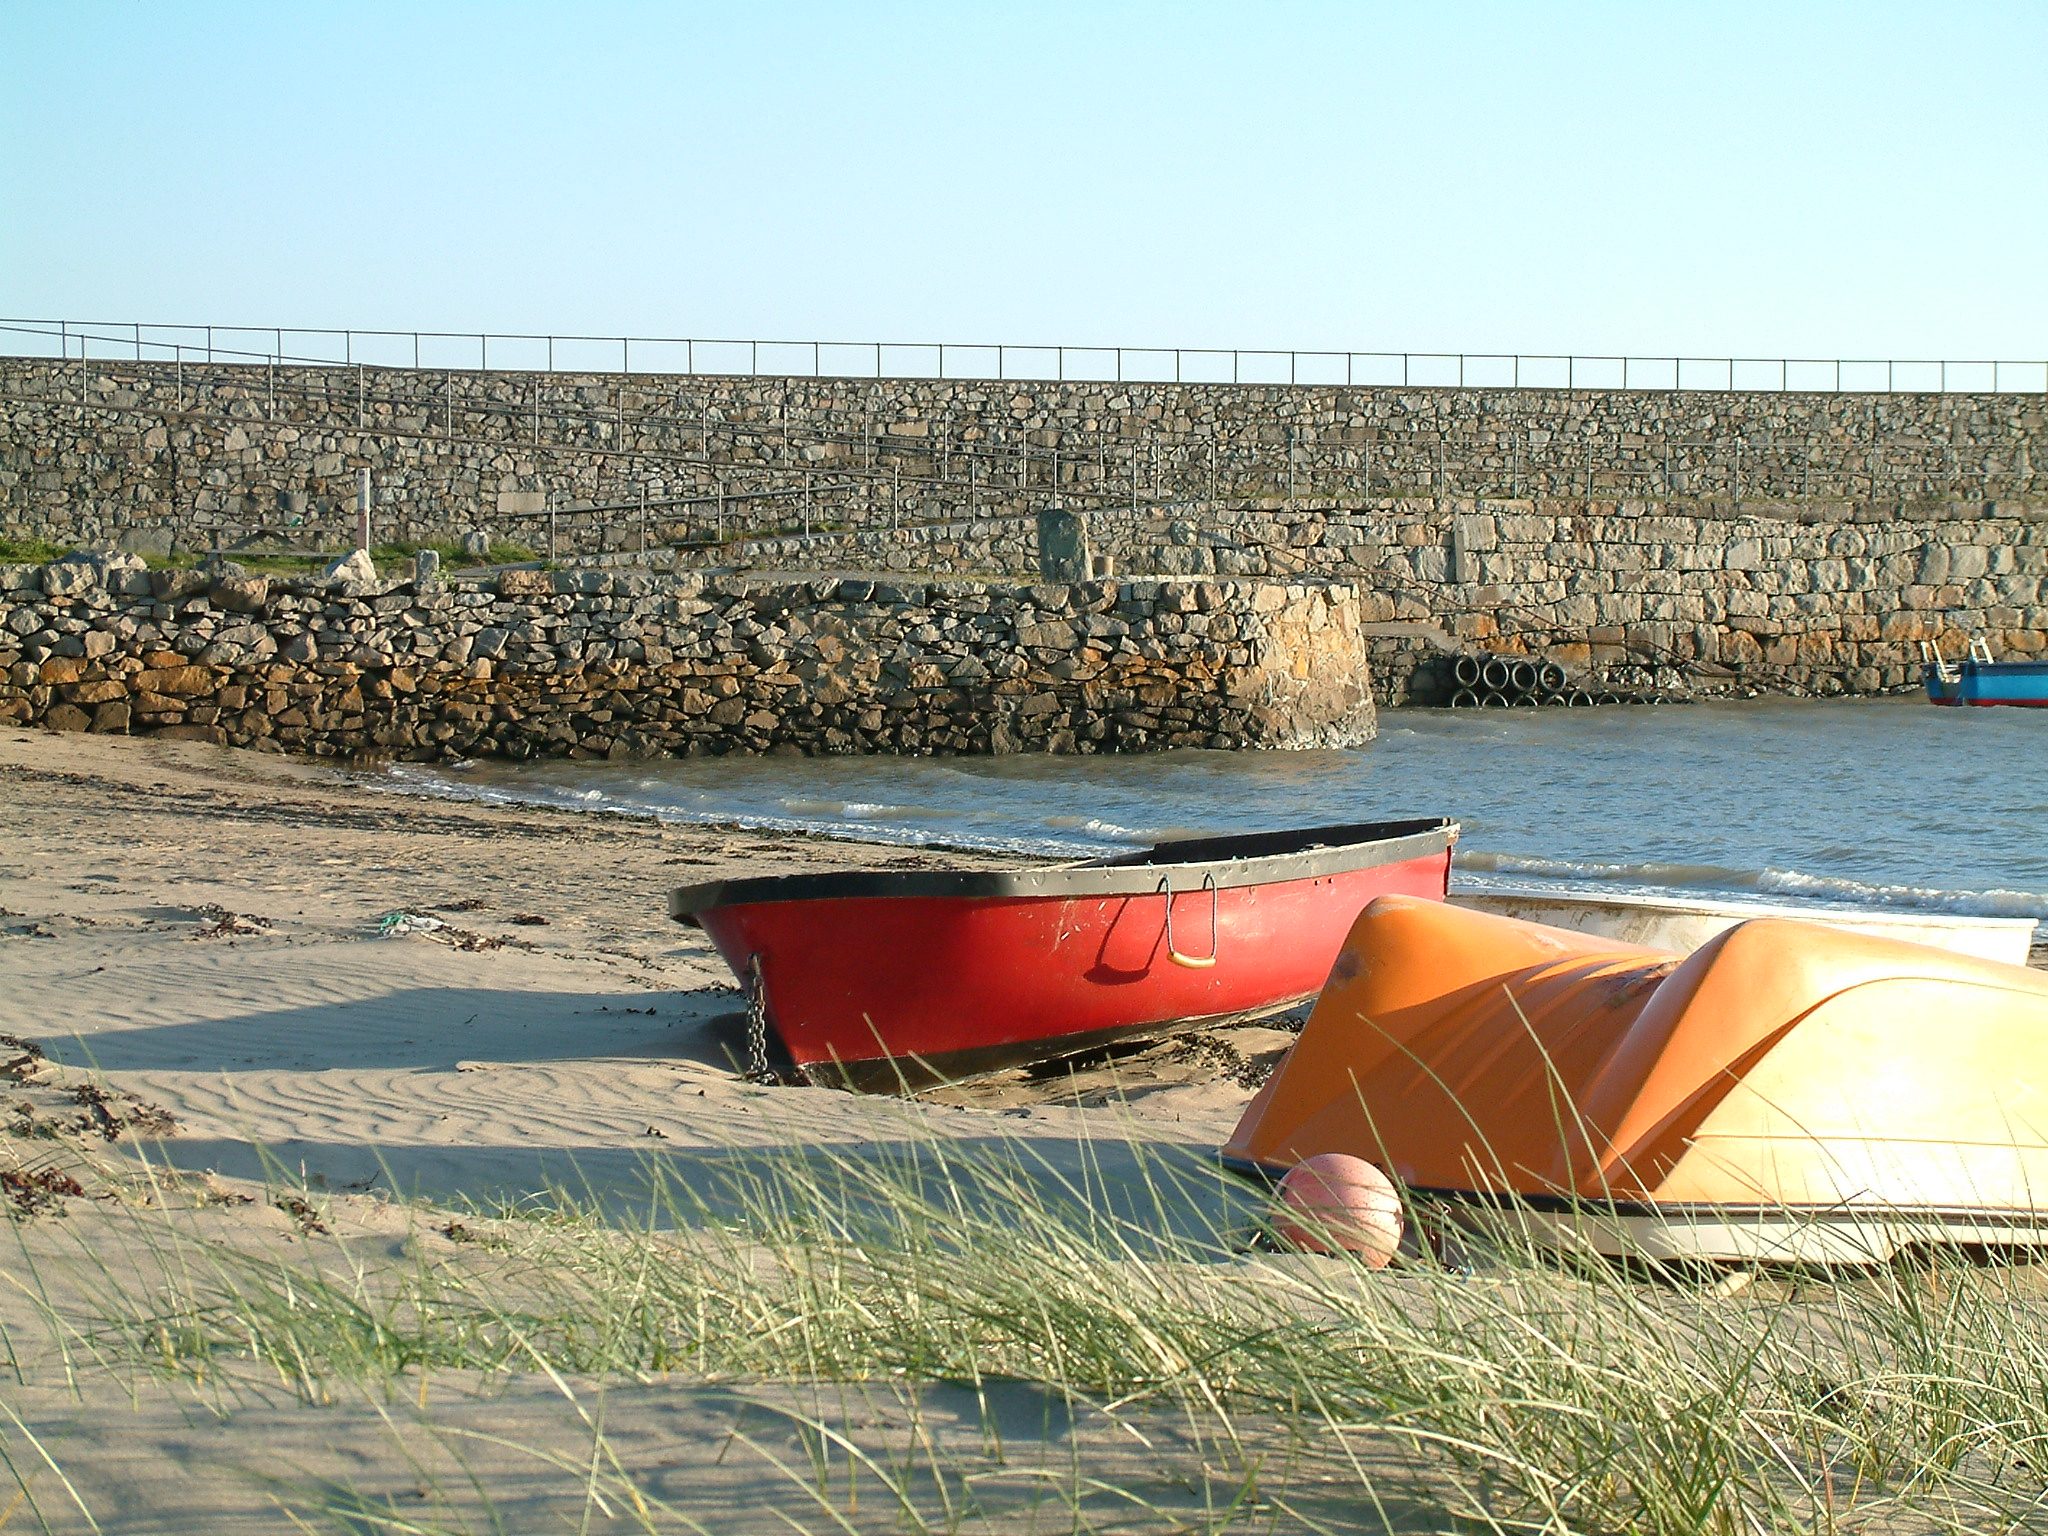 A view of the beach at Trefor with boats and jetty Llŷn Peninsula